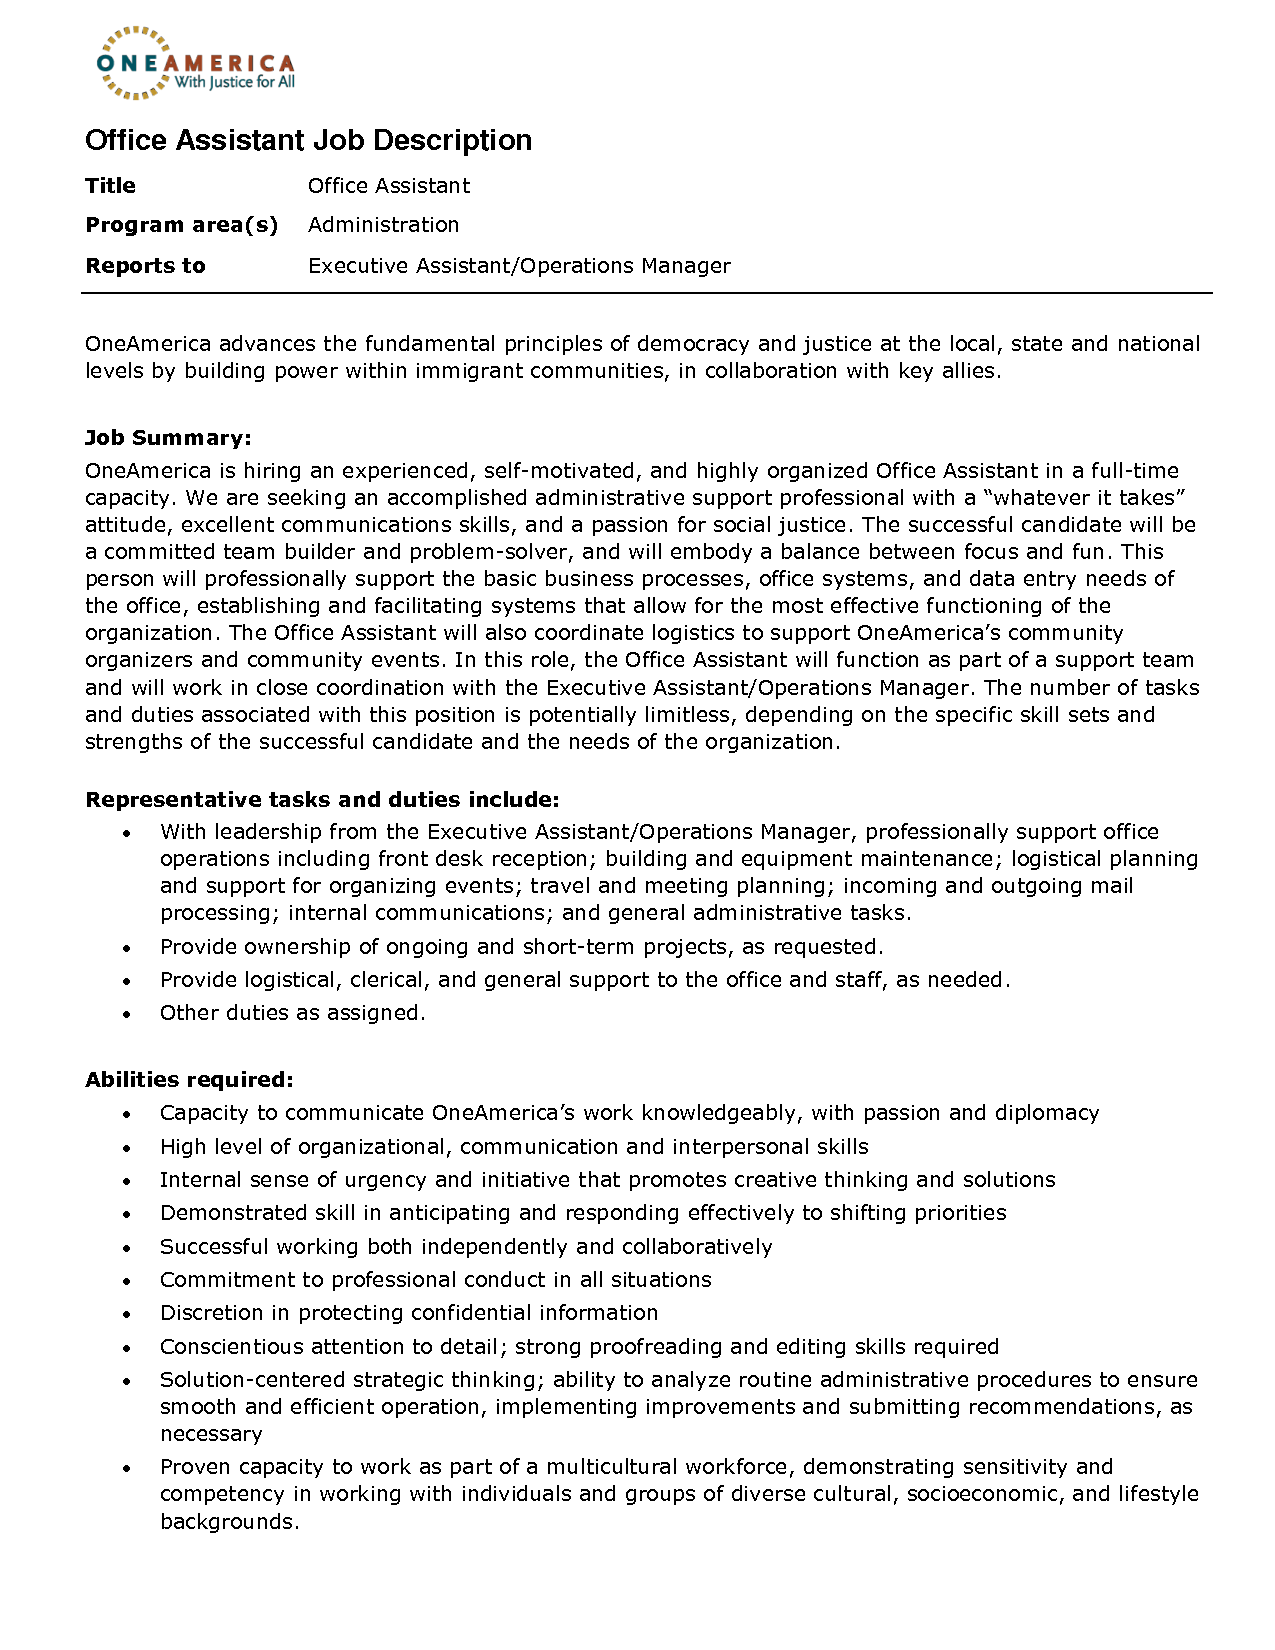 resume office assistant job description. Resume Example. Resume CV Cover Letter